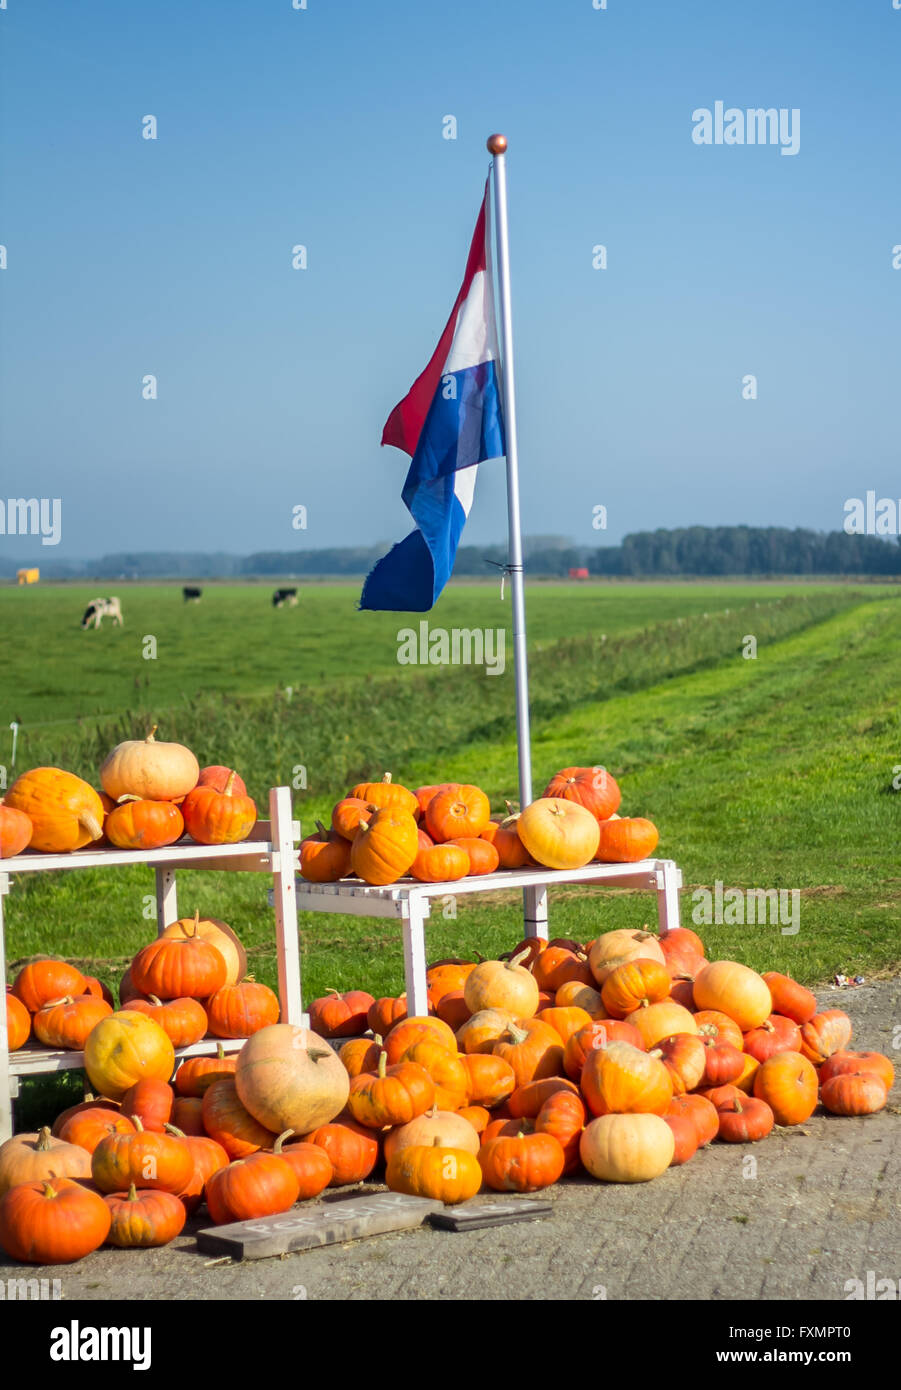 Flevoland, the Netherlands - October 2, 2011: pumpkins for sale in the  countryside